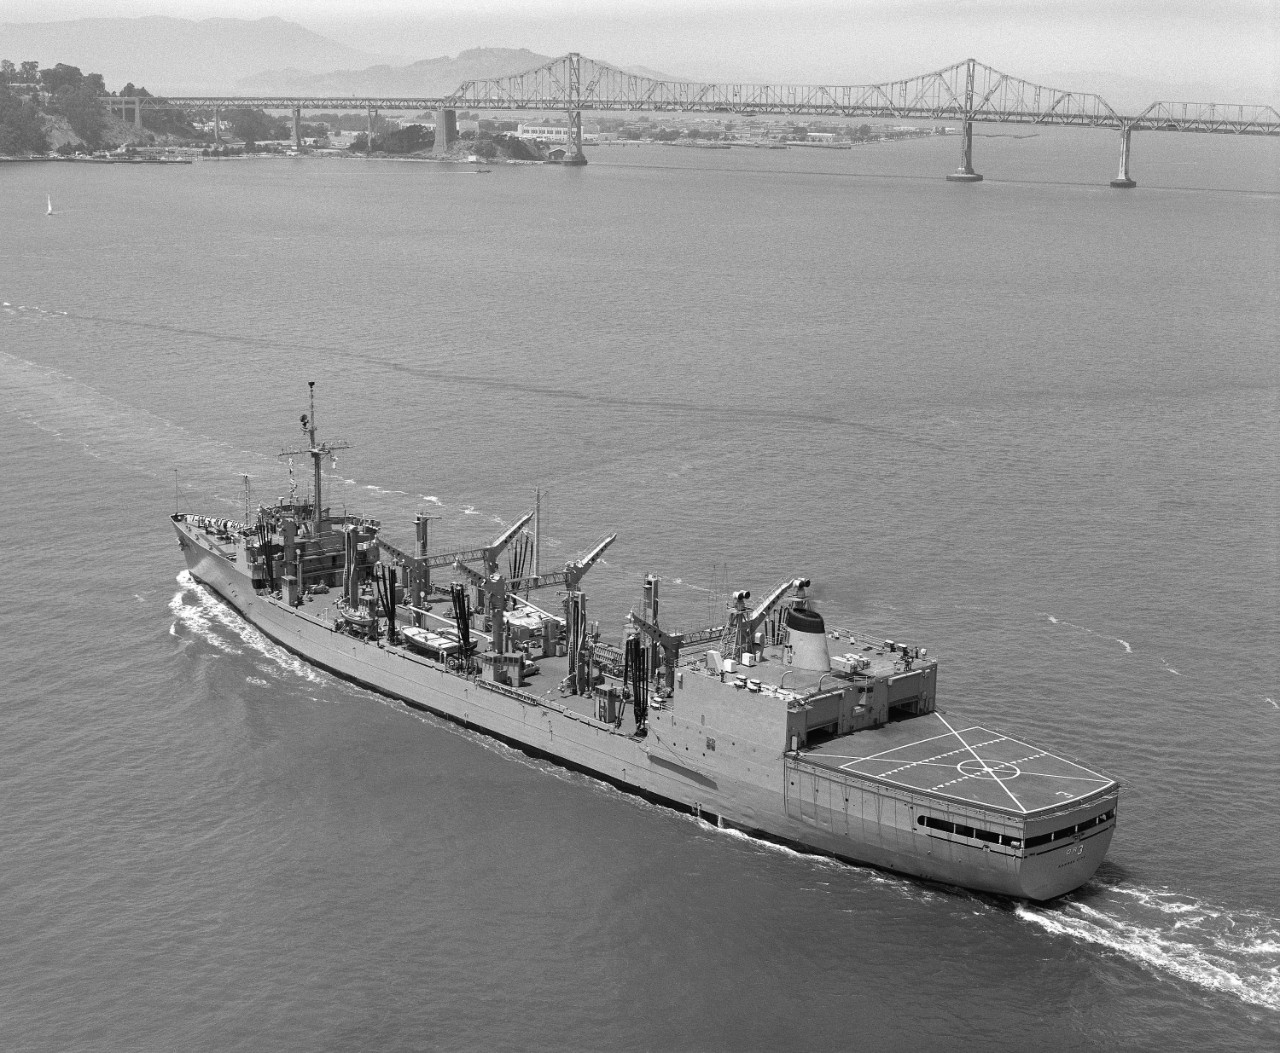 Kansas City underway in San Francisco Bay with the San Francisco-Oakland Bay Bridge in the background, August 1984. (U.S. Navy Photograph DN-SN-84-10221, National Archives and Records Administration, Still Pictures Division, College Park, Md.)